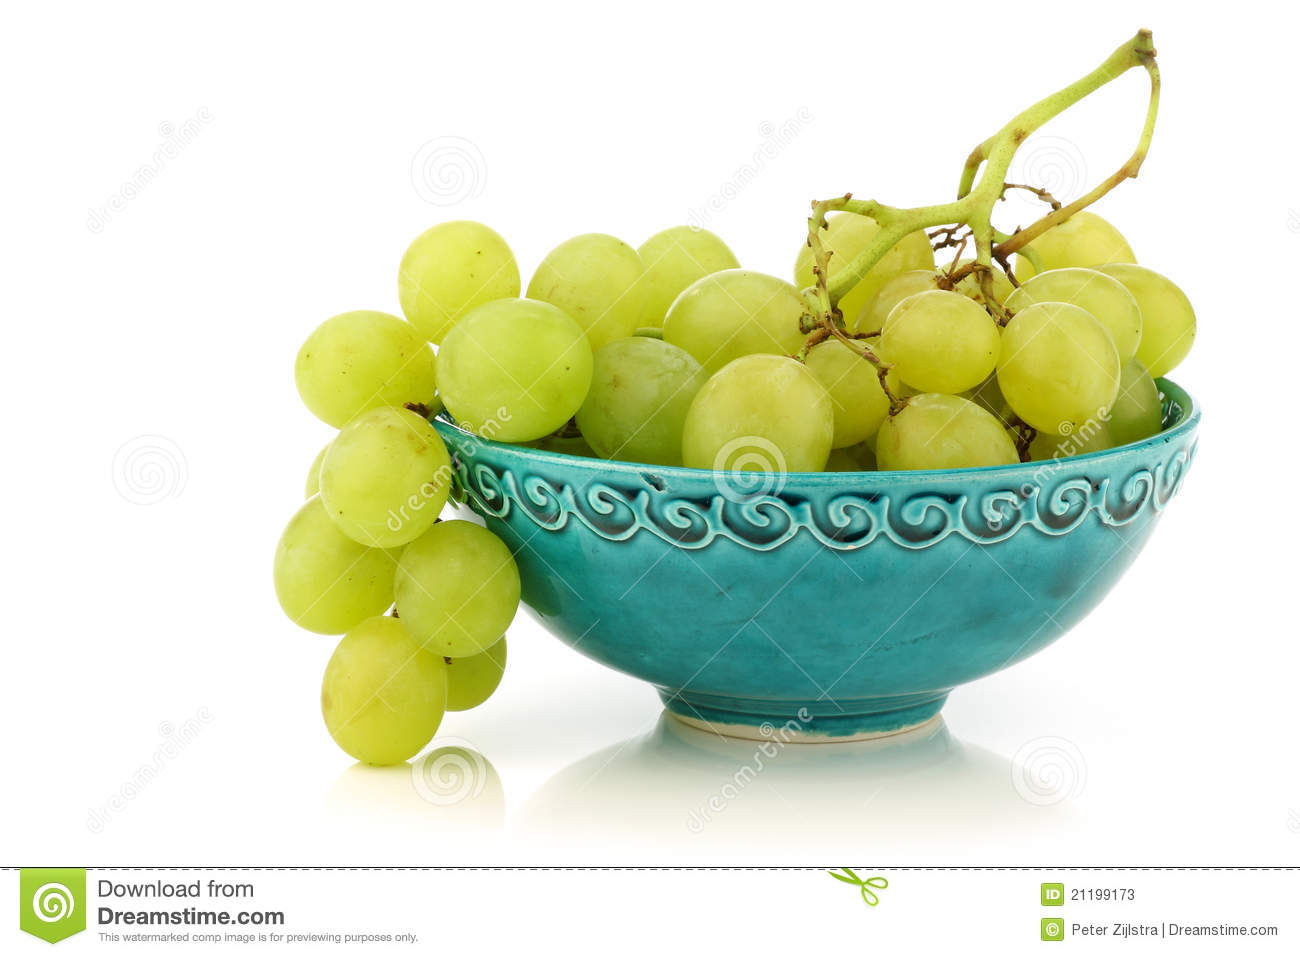 Fresh white grapes in a decorated turquoise bowl